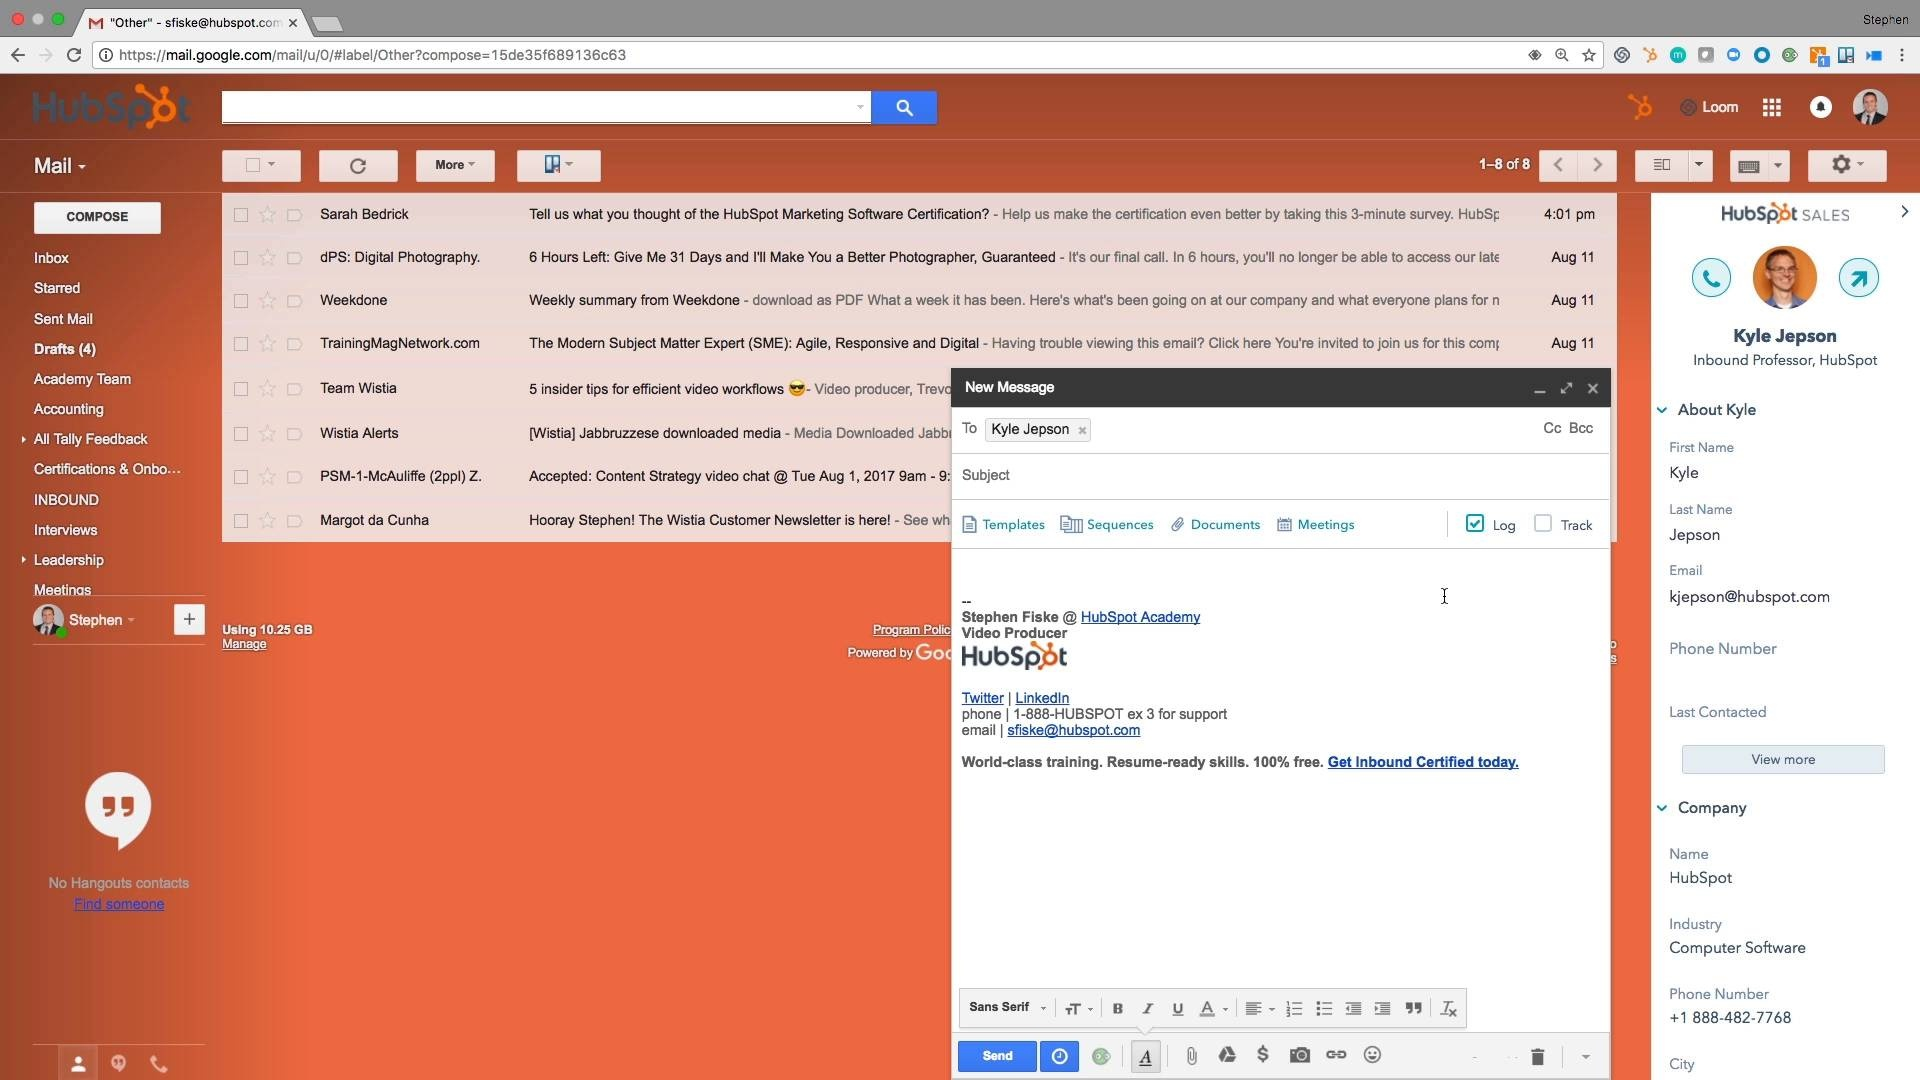 Wistia video thumbnail - HS_Email_Extension_9_7_17_Tool_V2